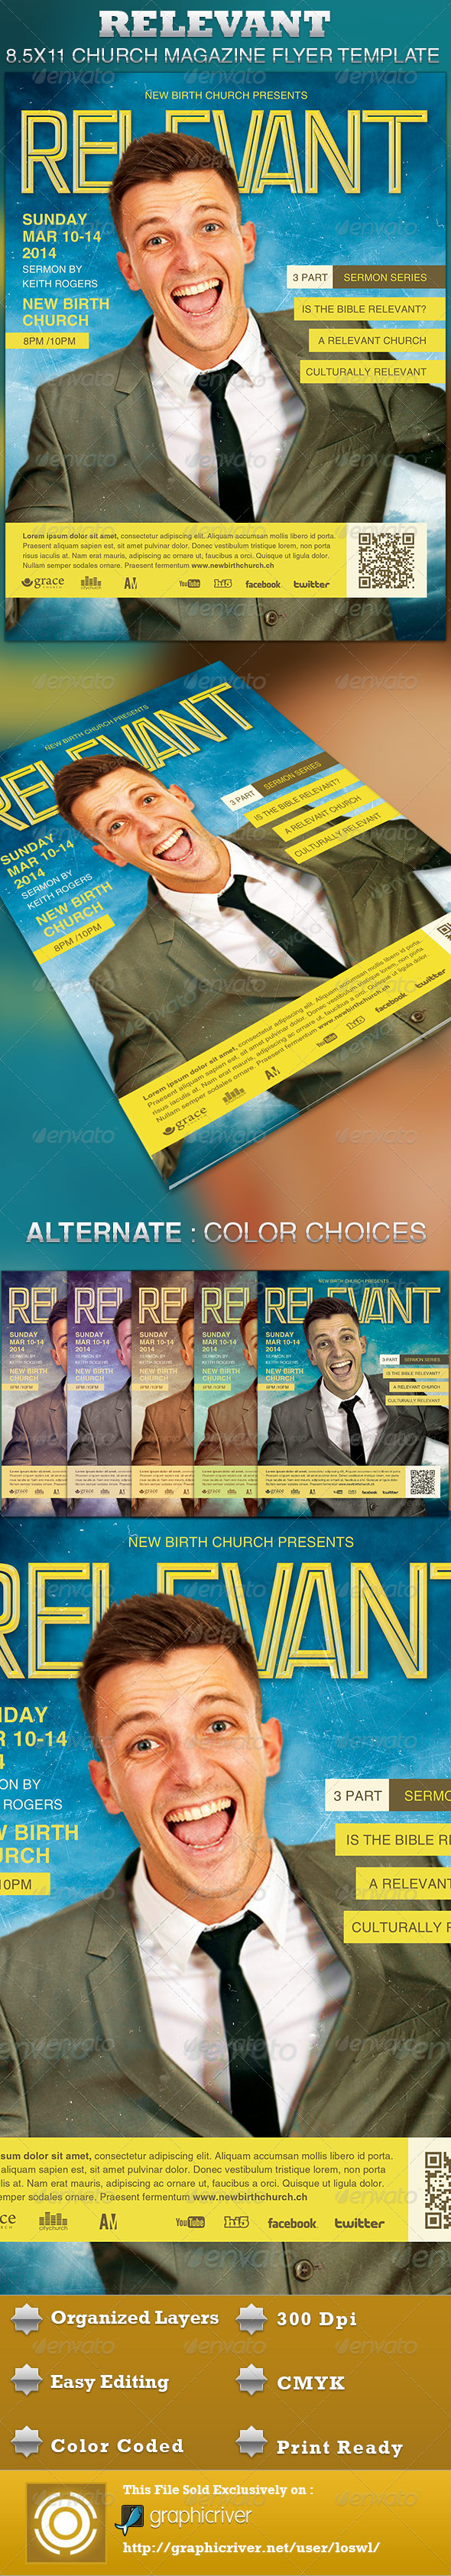 Relevant Church Magazine Flyer Template - Church Flyers